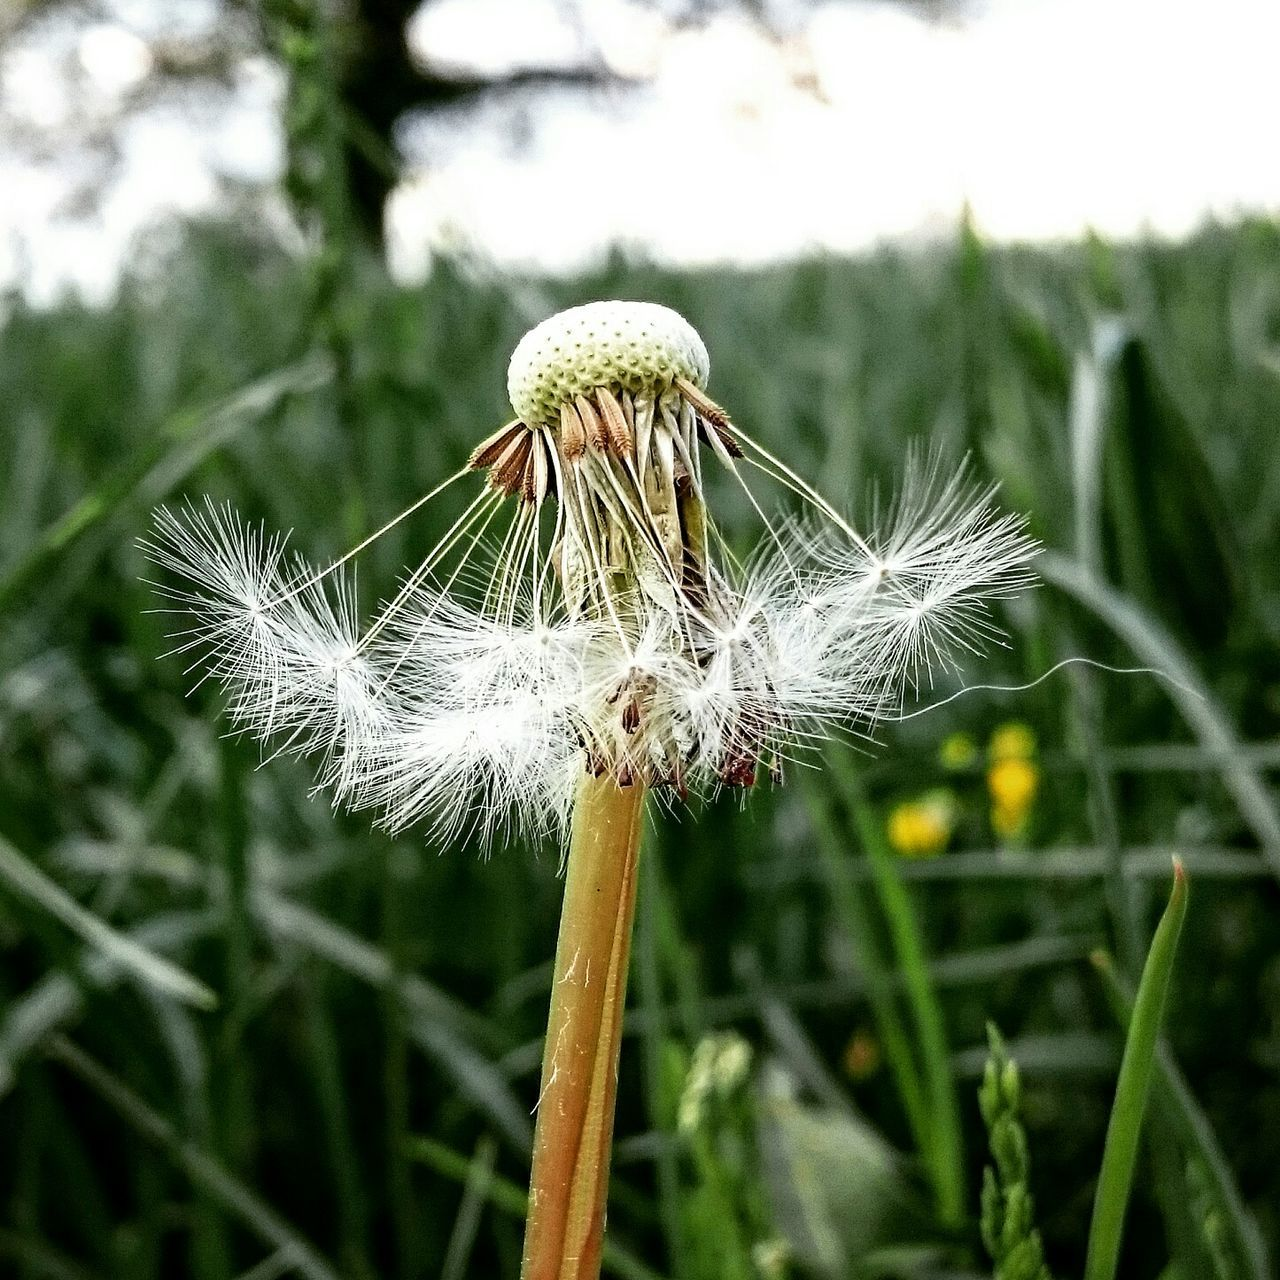 Close-Up Of Blown Dandelion In Field